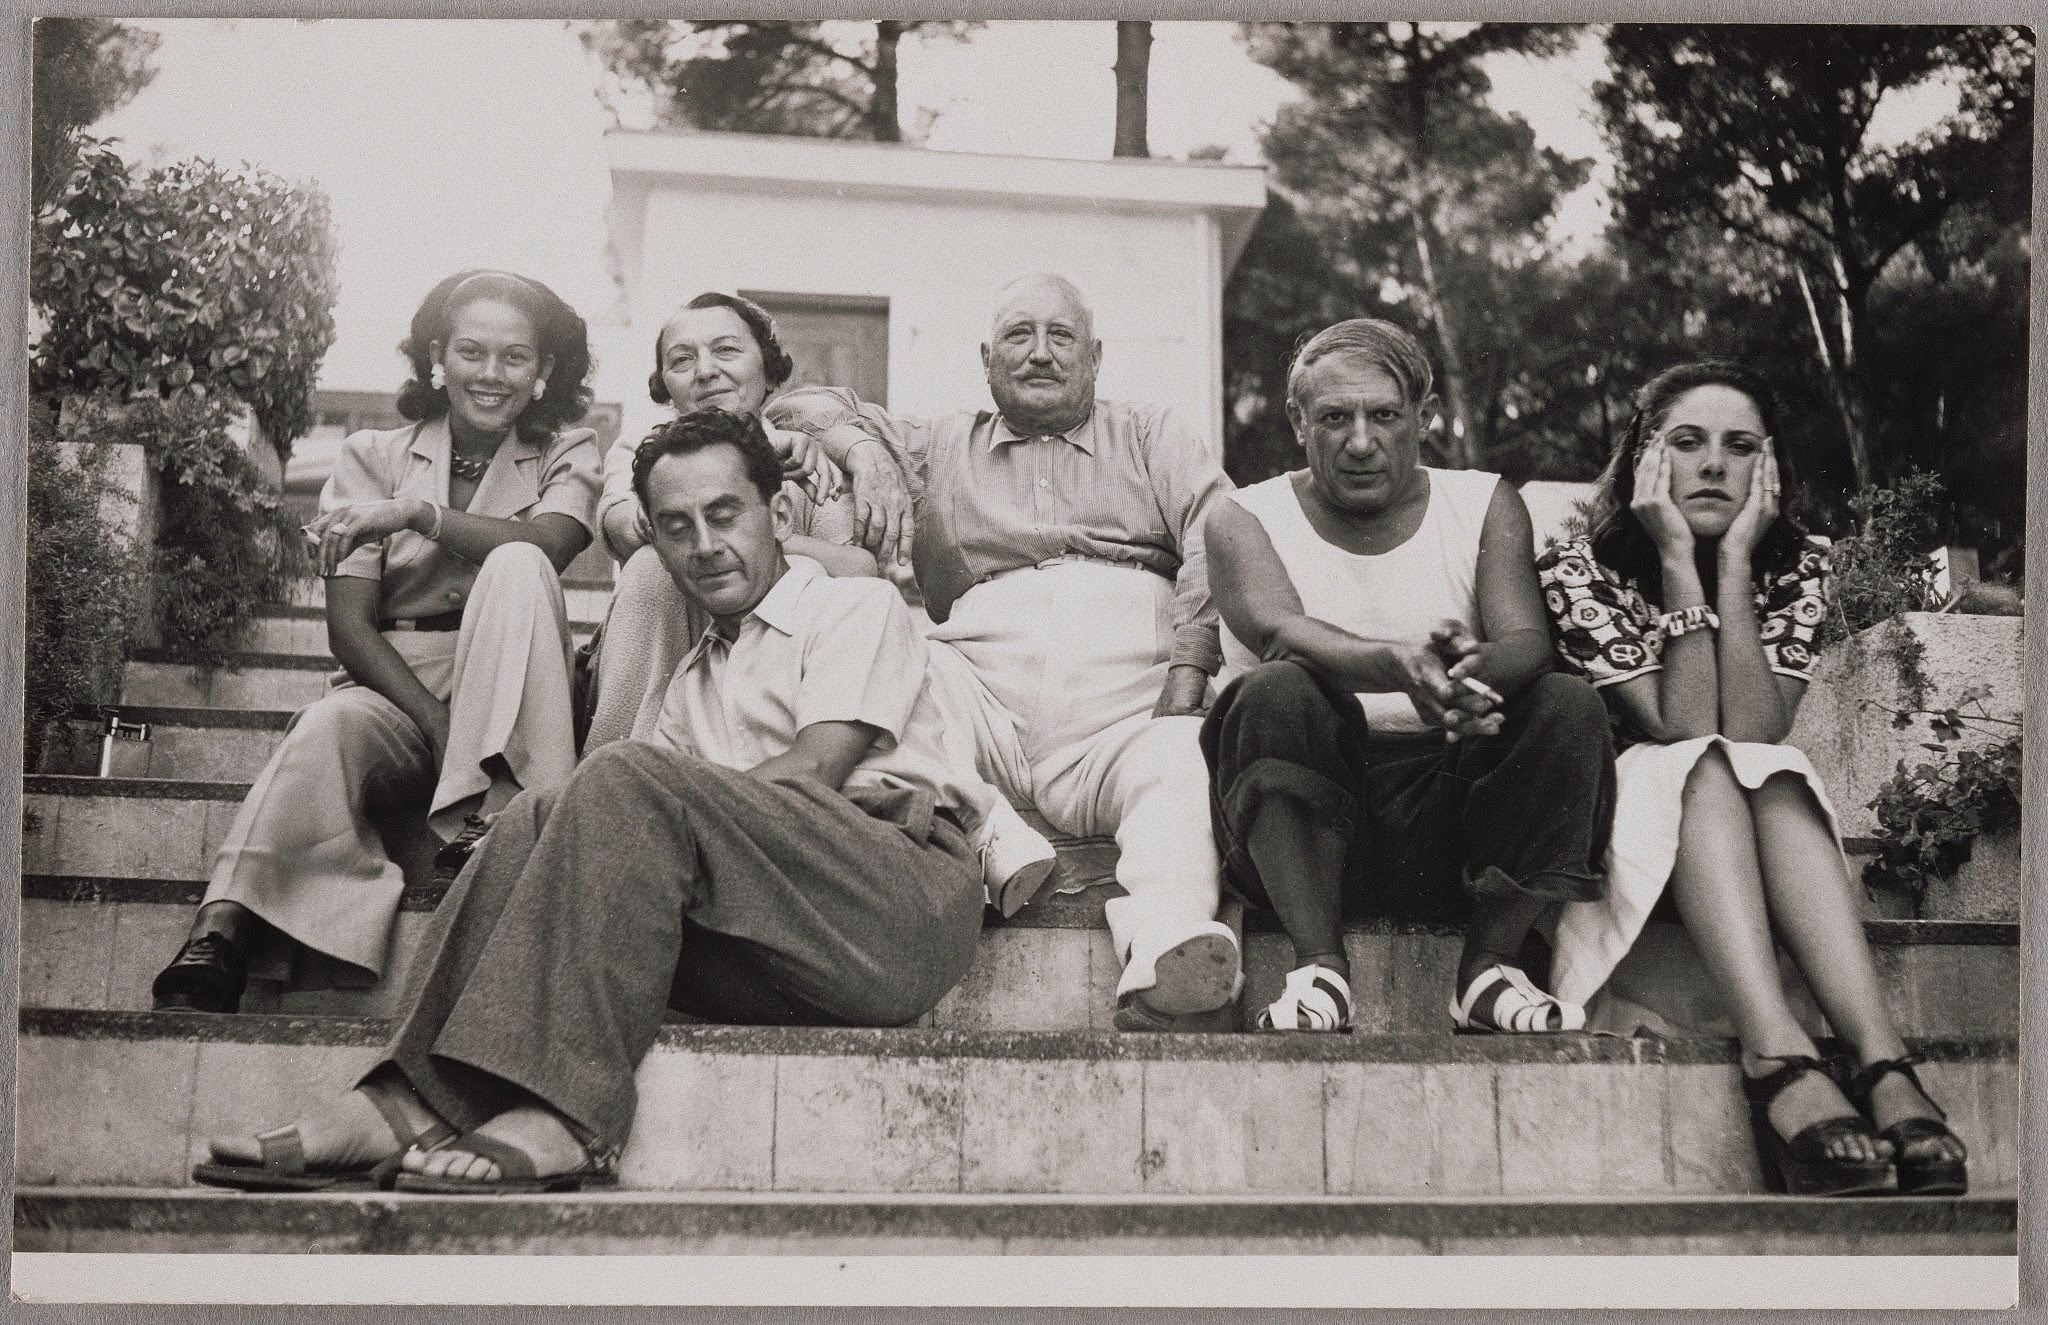 Ady Fidelin, Marie-Cuttoli, Man Ray, Picasso and Dor Maar, 1937 by Man Ray ©Man Ray Trust ADAGP Paris and DACS London 2017